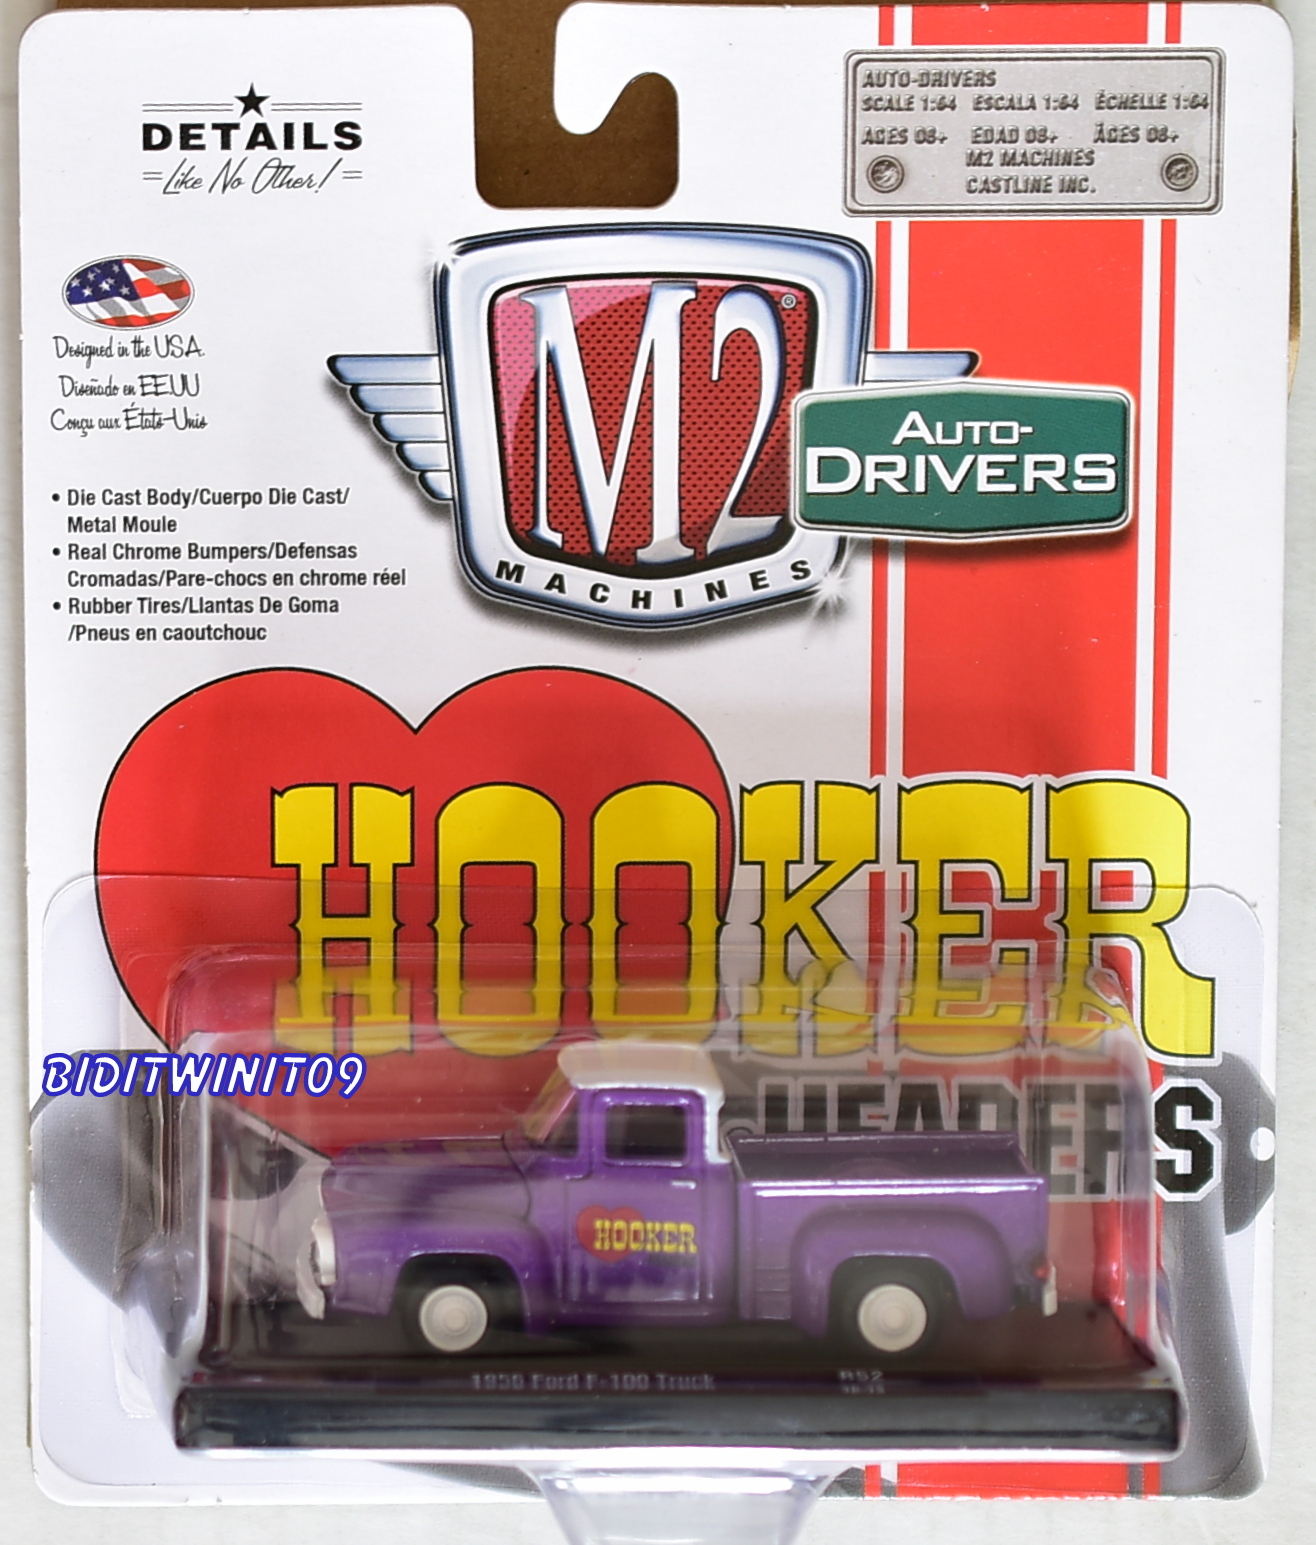 M2 MACHINES AUTO-DRIVERS HOOKER HEADERS 1956 FORD F-100 TRUCK R52 CHASE E+